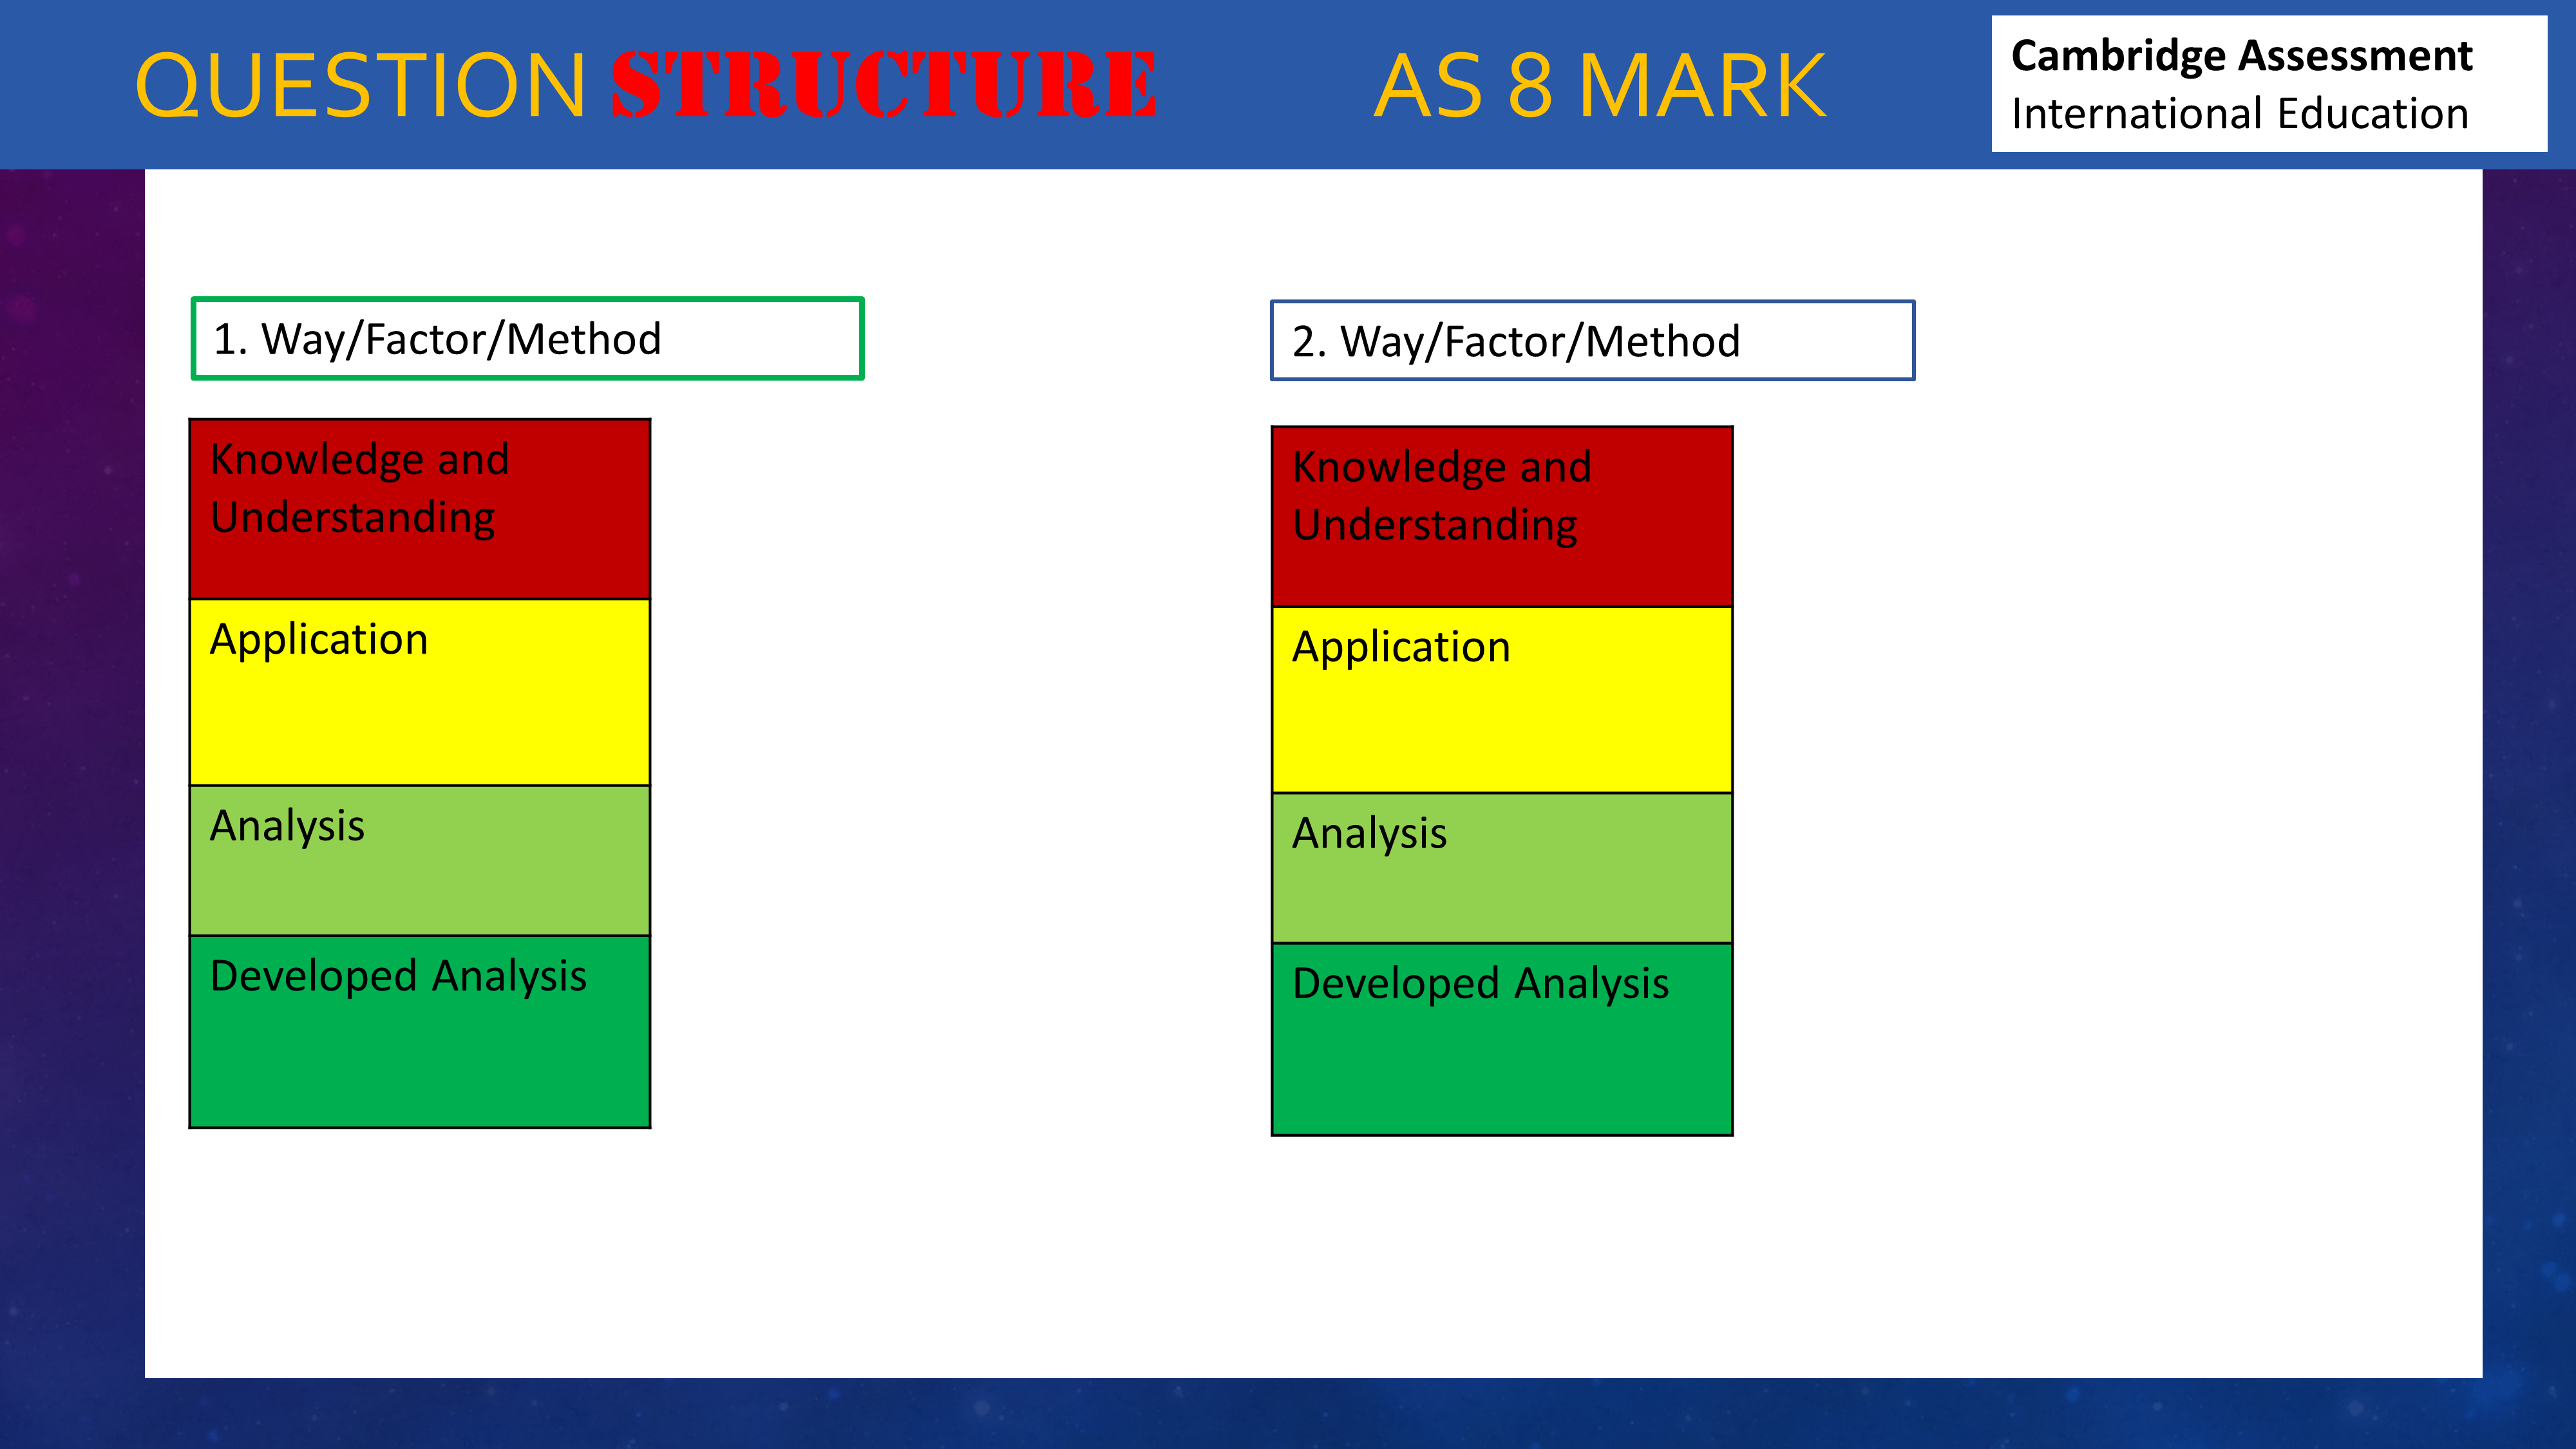 Analysis 8 mark question structure